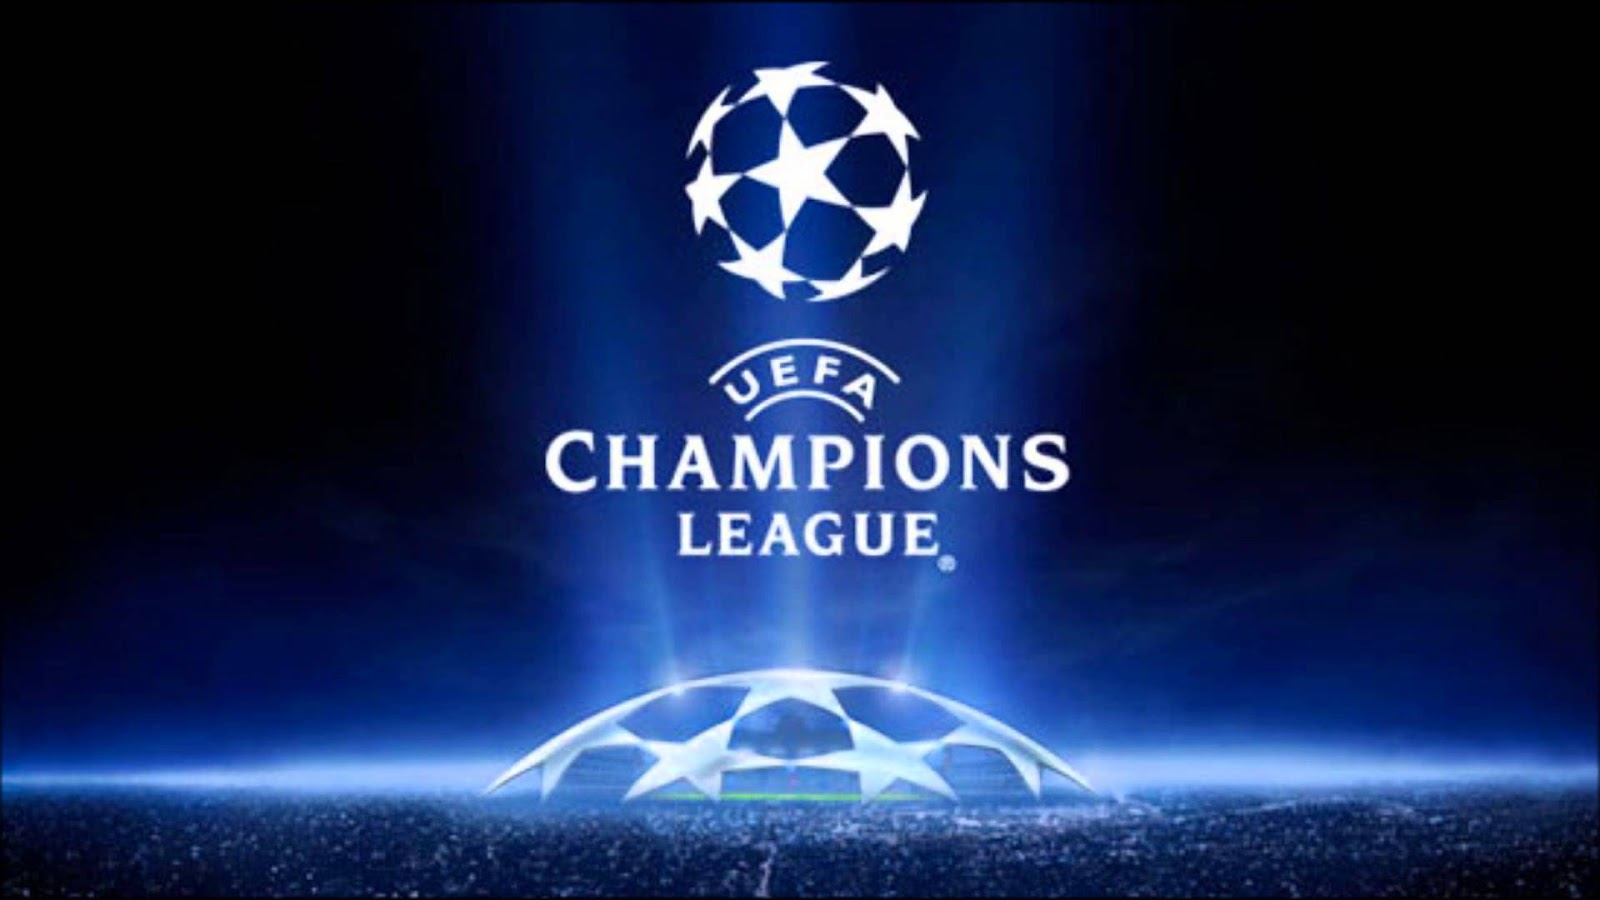 Champions League 2015/2016, resultados de cuartos de final - ida ...